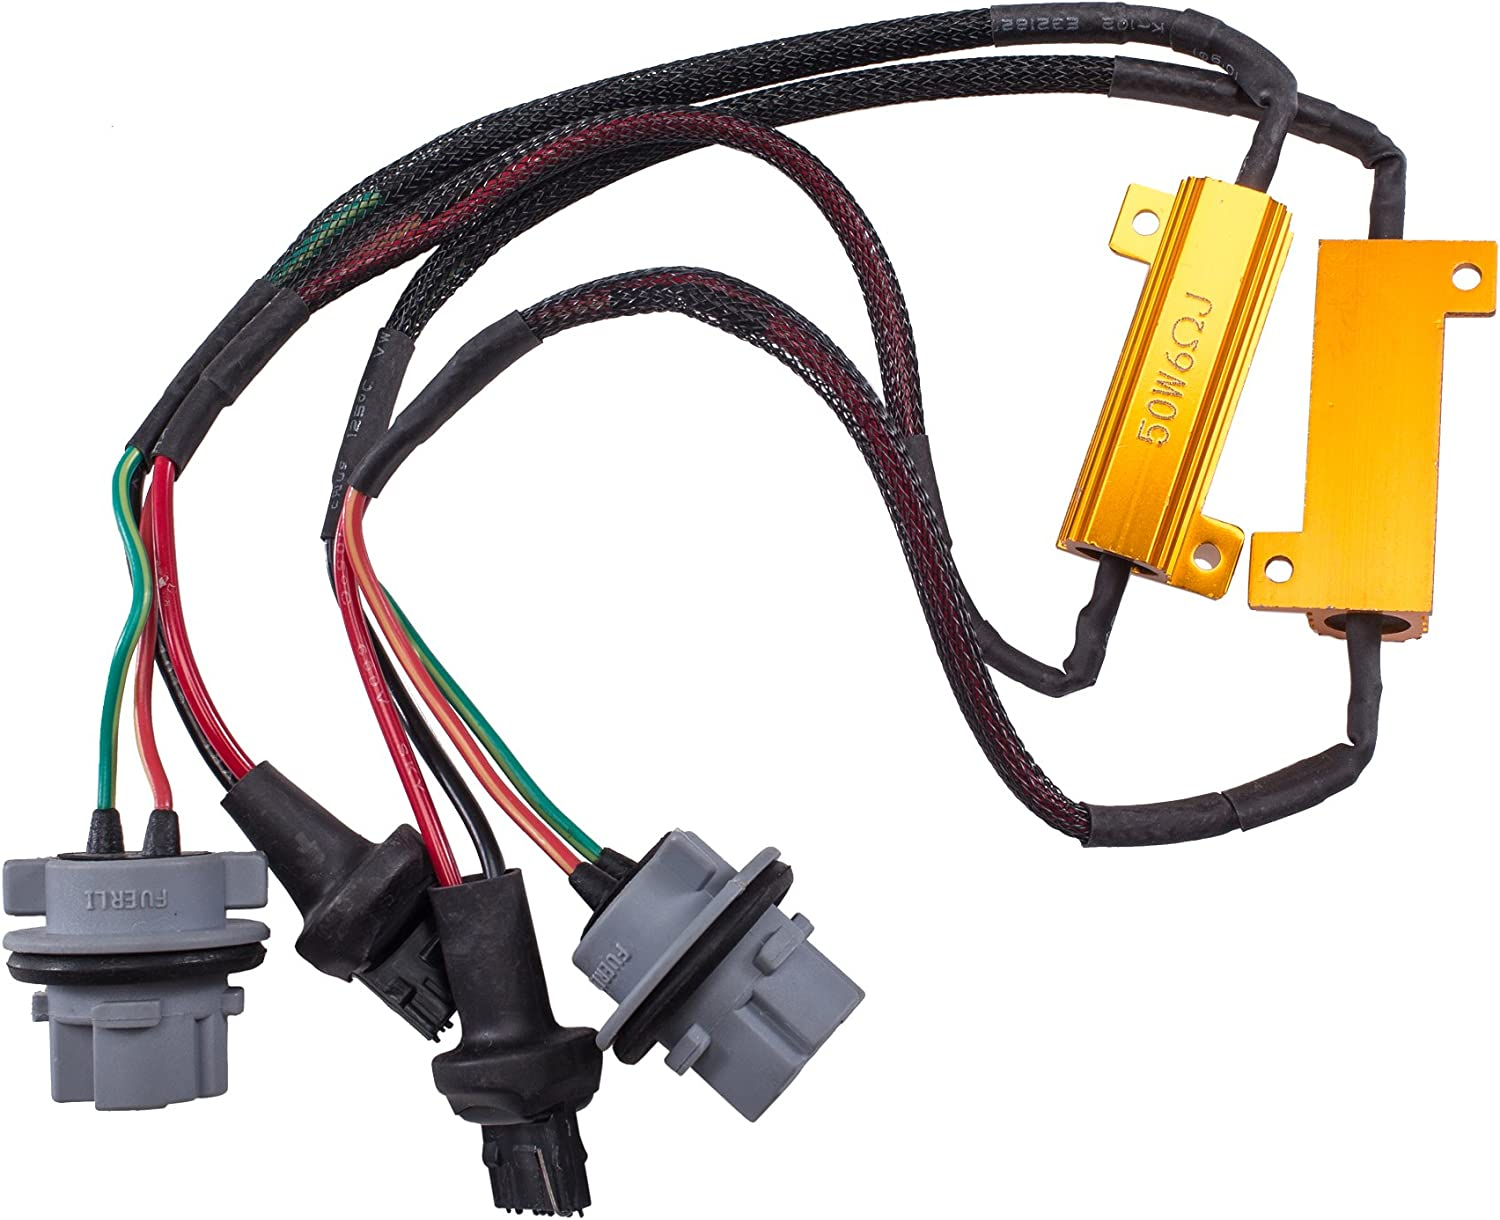 50W 6Ohm LED Load Resistors Free Shipping Cheap Bargain Gift for Hyperflash Translated Rapid Fix Blink -